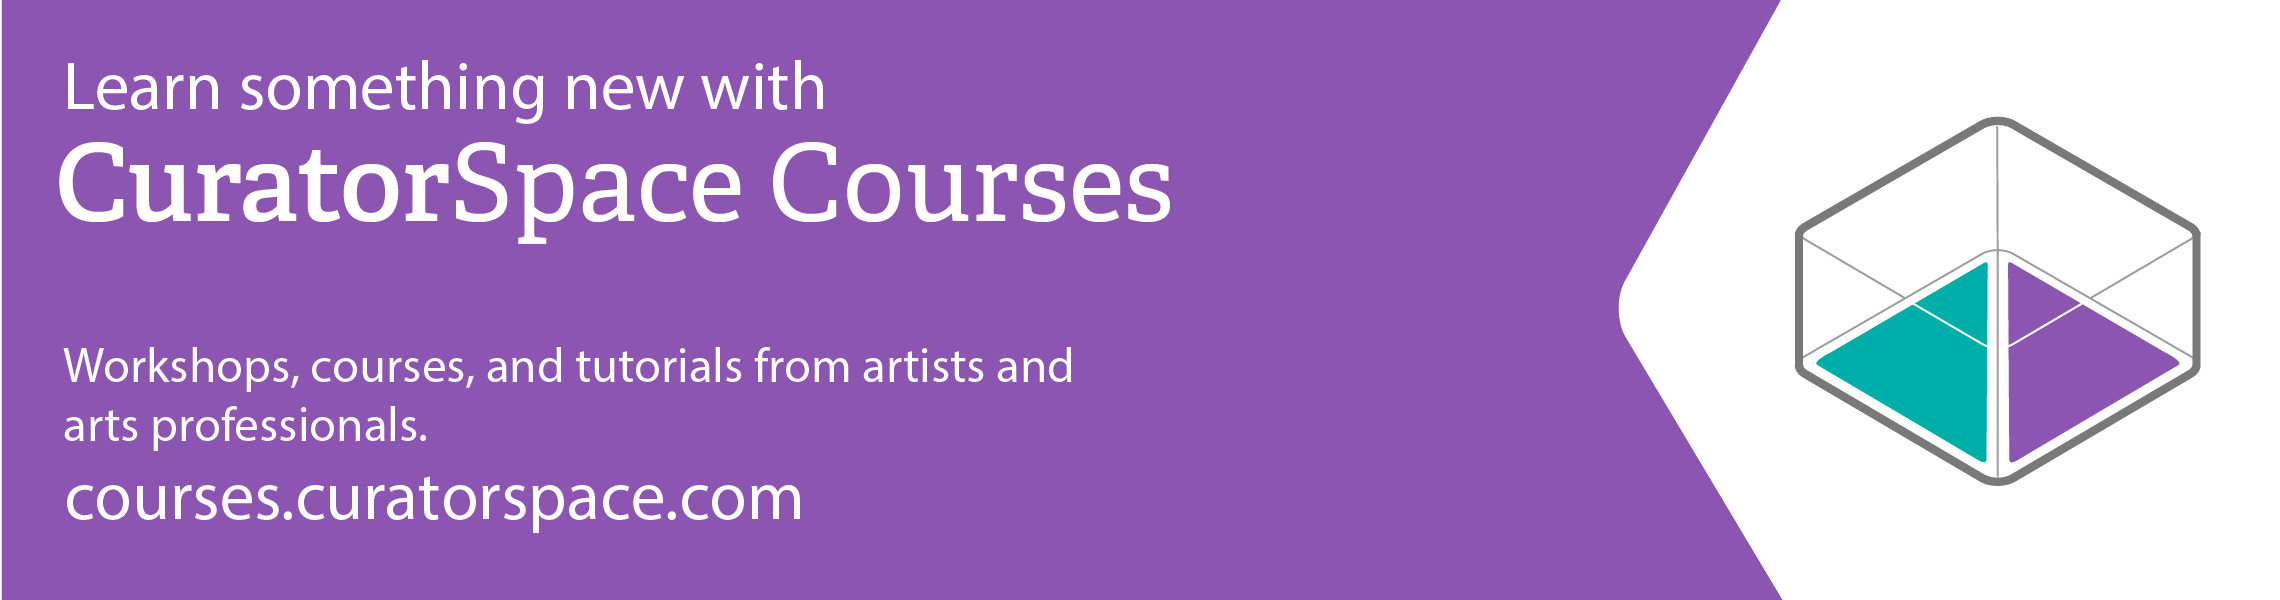 CuratorSpace Courses - Learn something new - Workshops, courses, and tutorials from artists and arts professionals